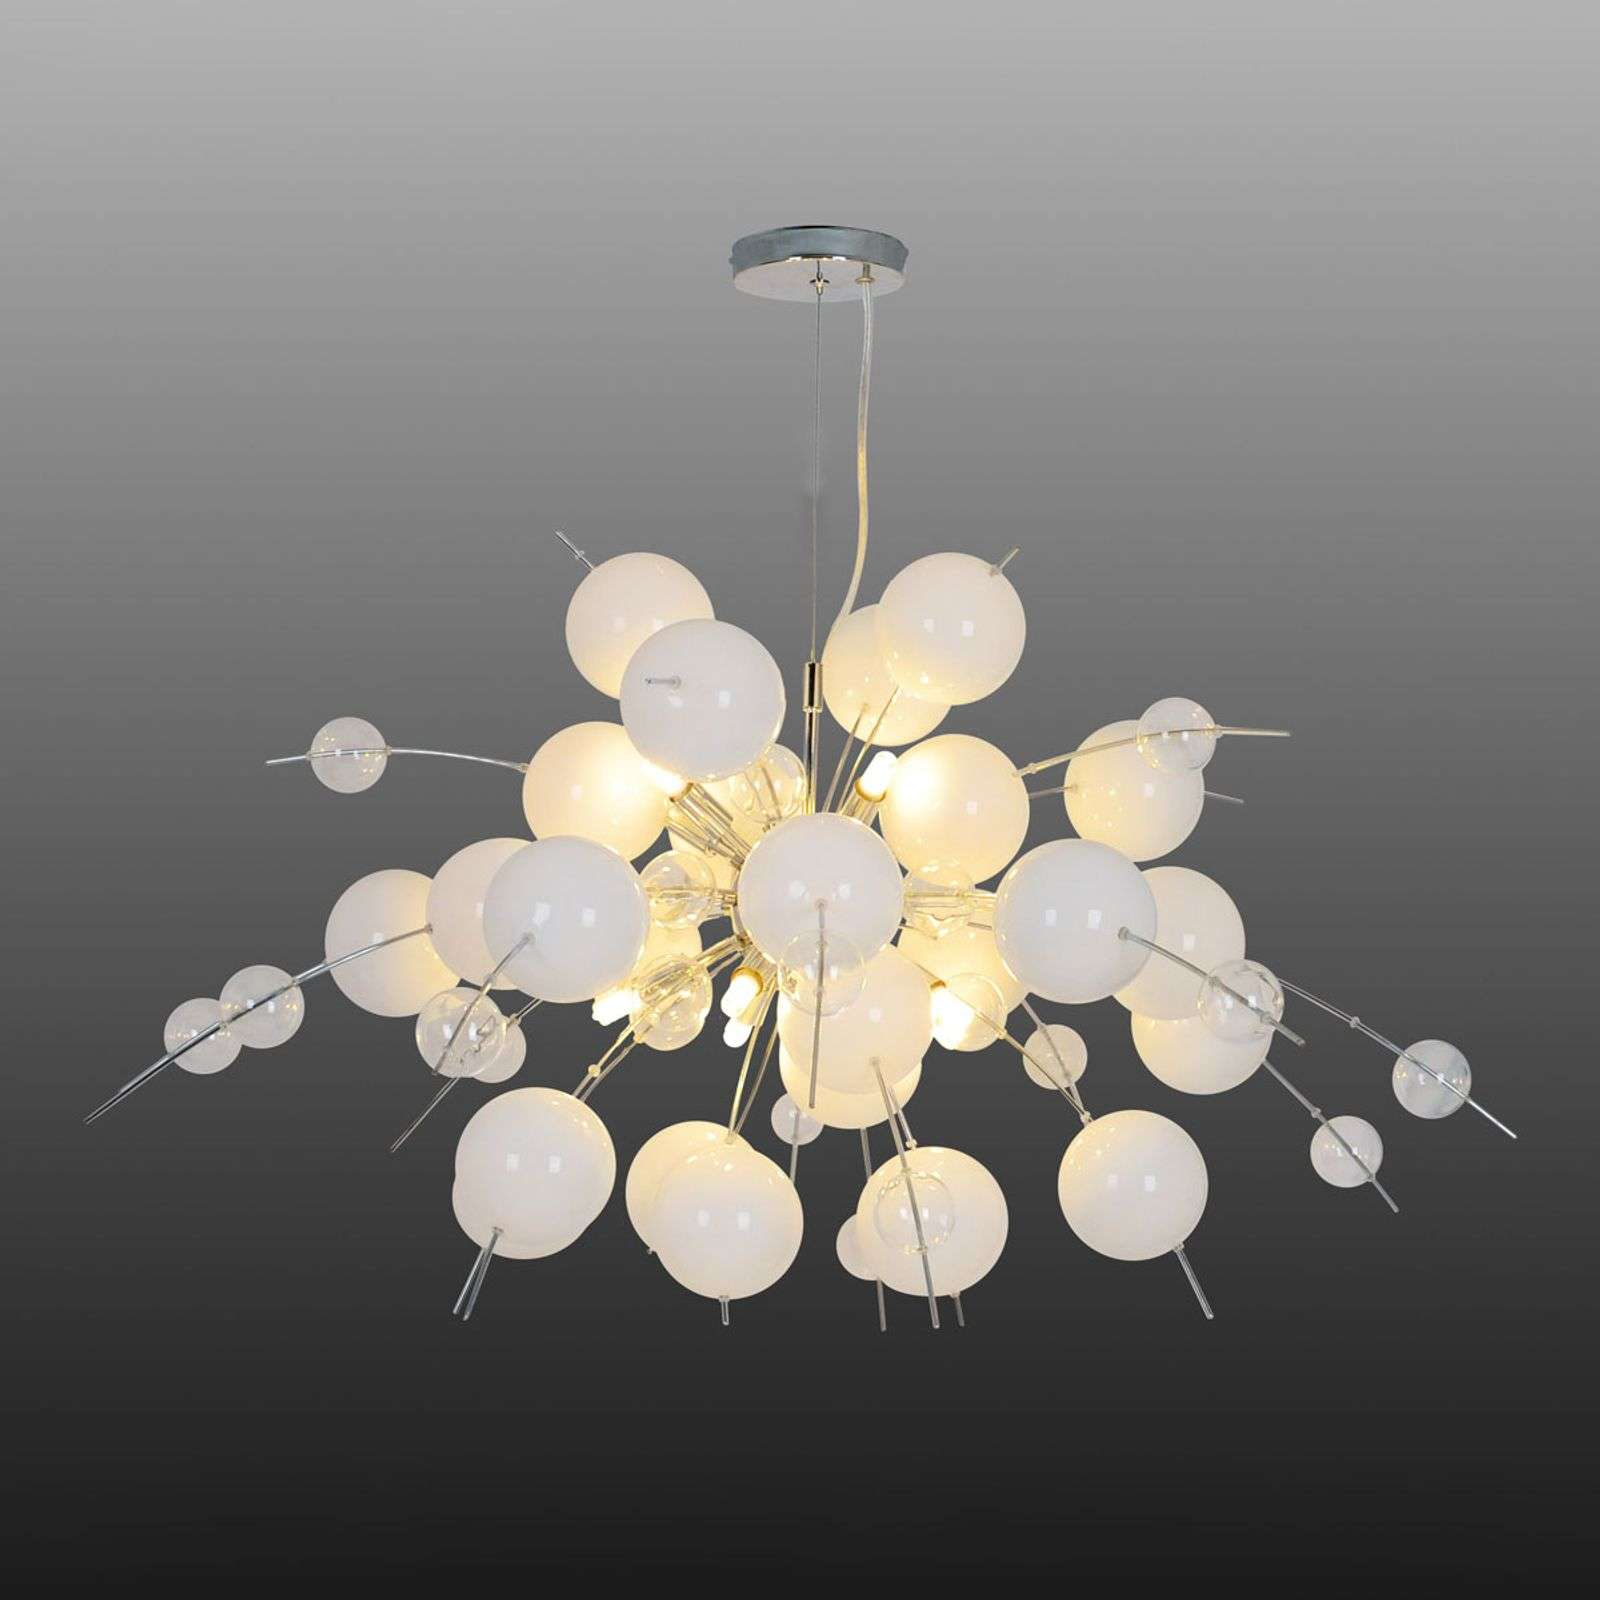 Hanglamp Explosion in wit/chroom 98cm